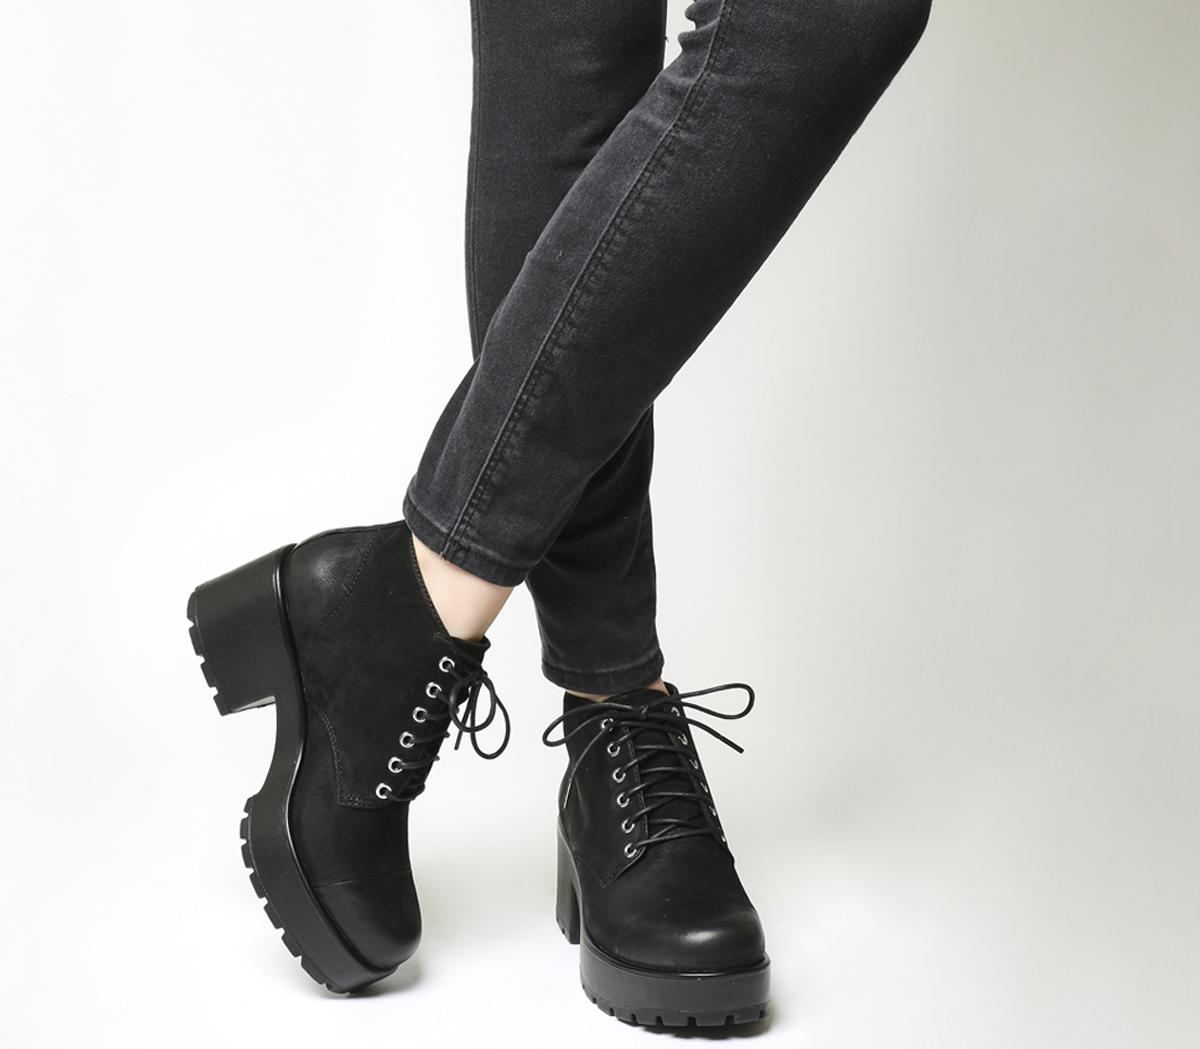 Dioon Lace Up Boots